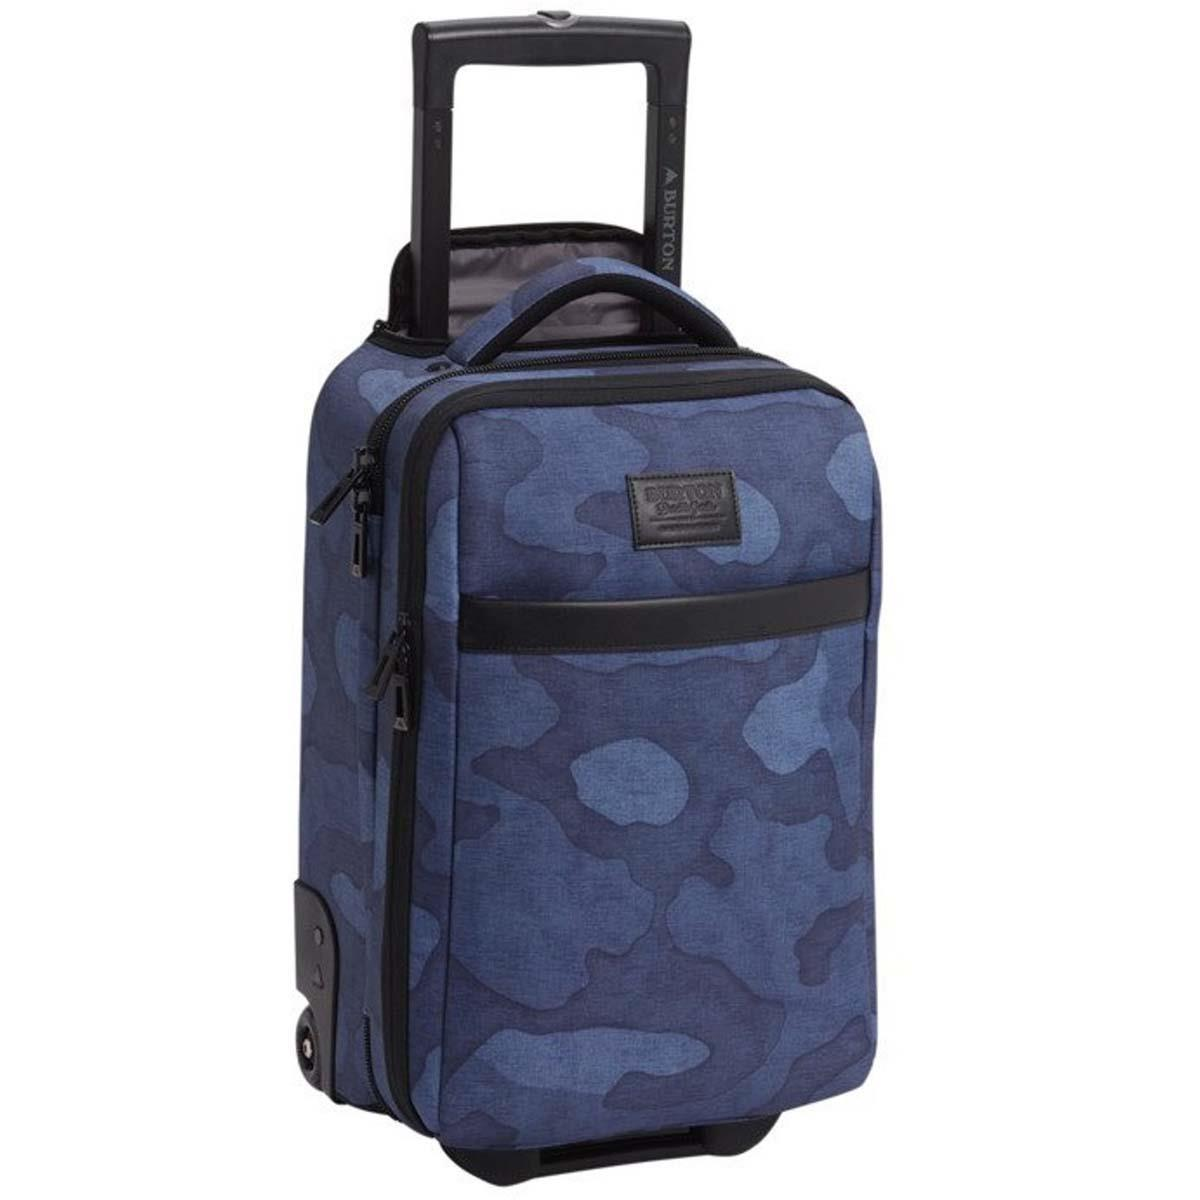 Burton Wheelie Flyer Travel Bag. Loading zoom f00fb4e717215